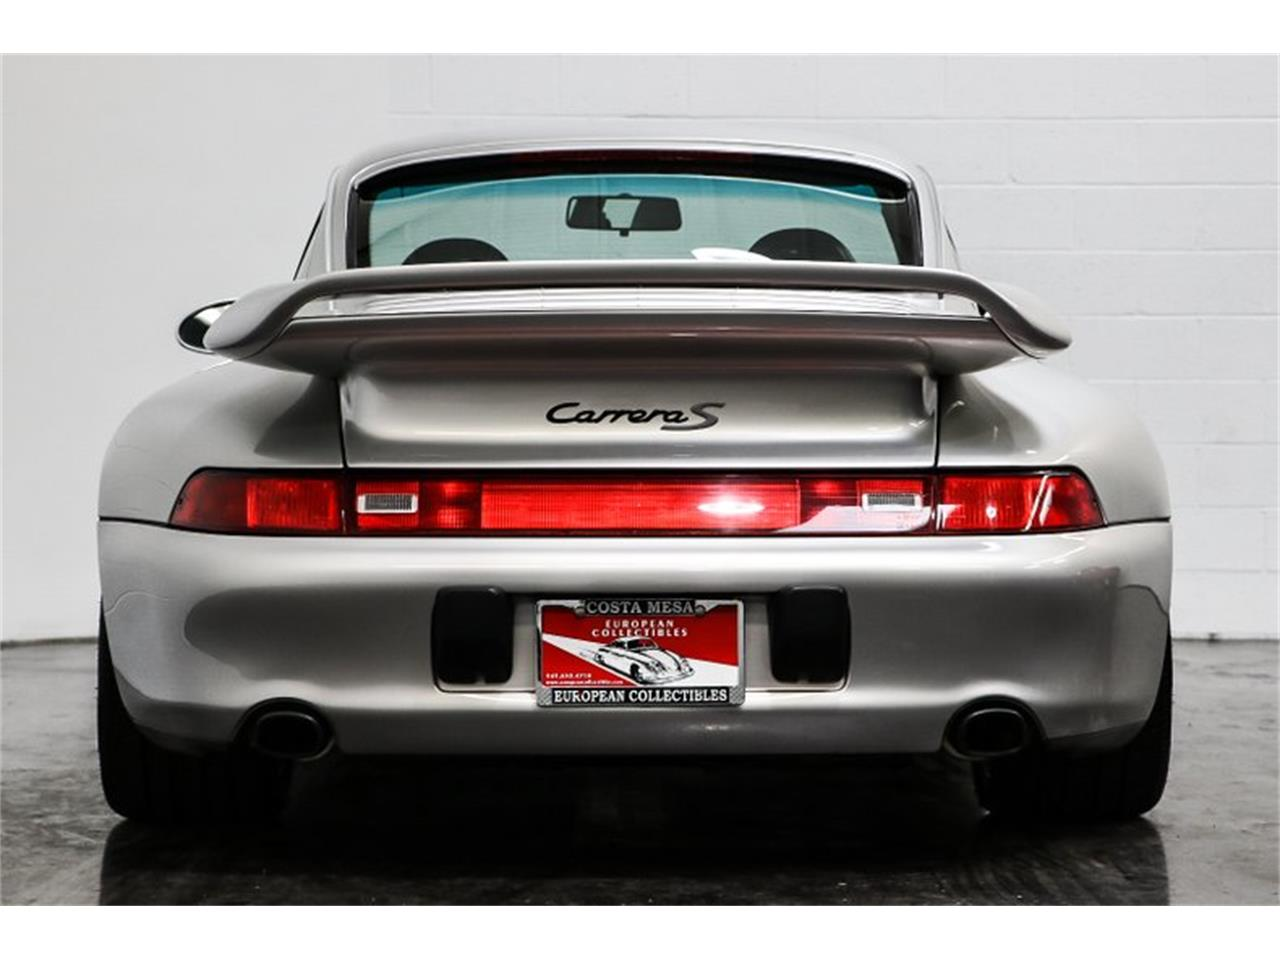 1998 Porsche 911 for sale in Costa Mesa, CA – photo 8